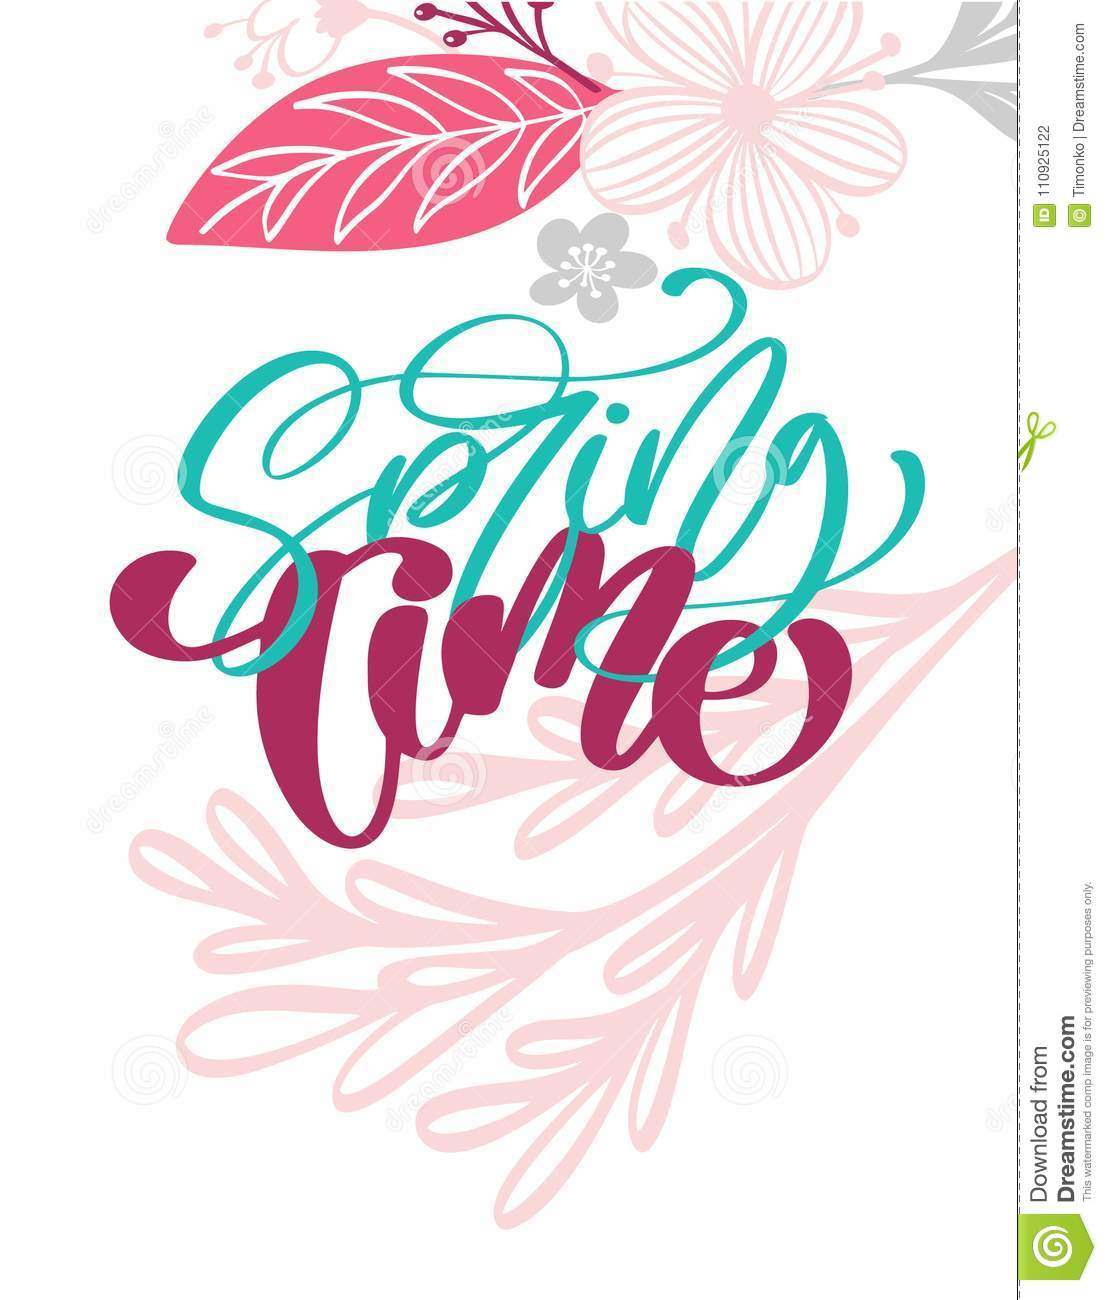 Spring Time Hand Drawn Text And Design For Greeting Card Trendy